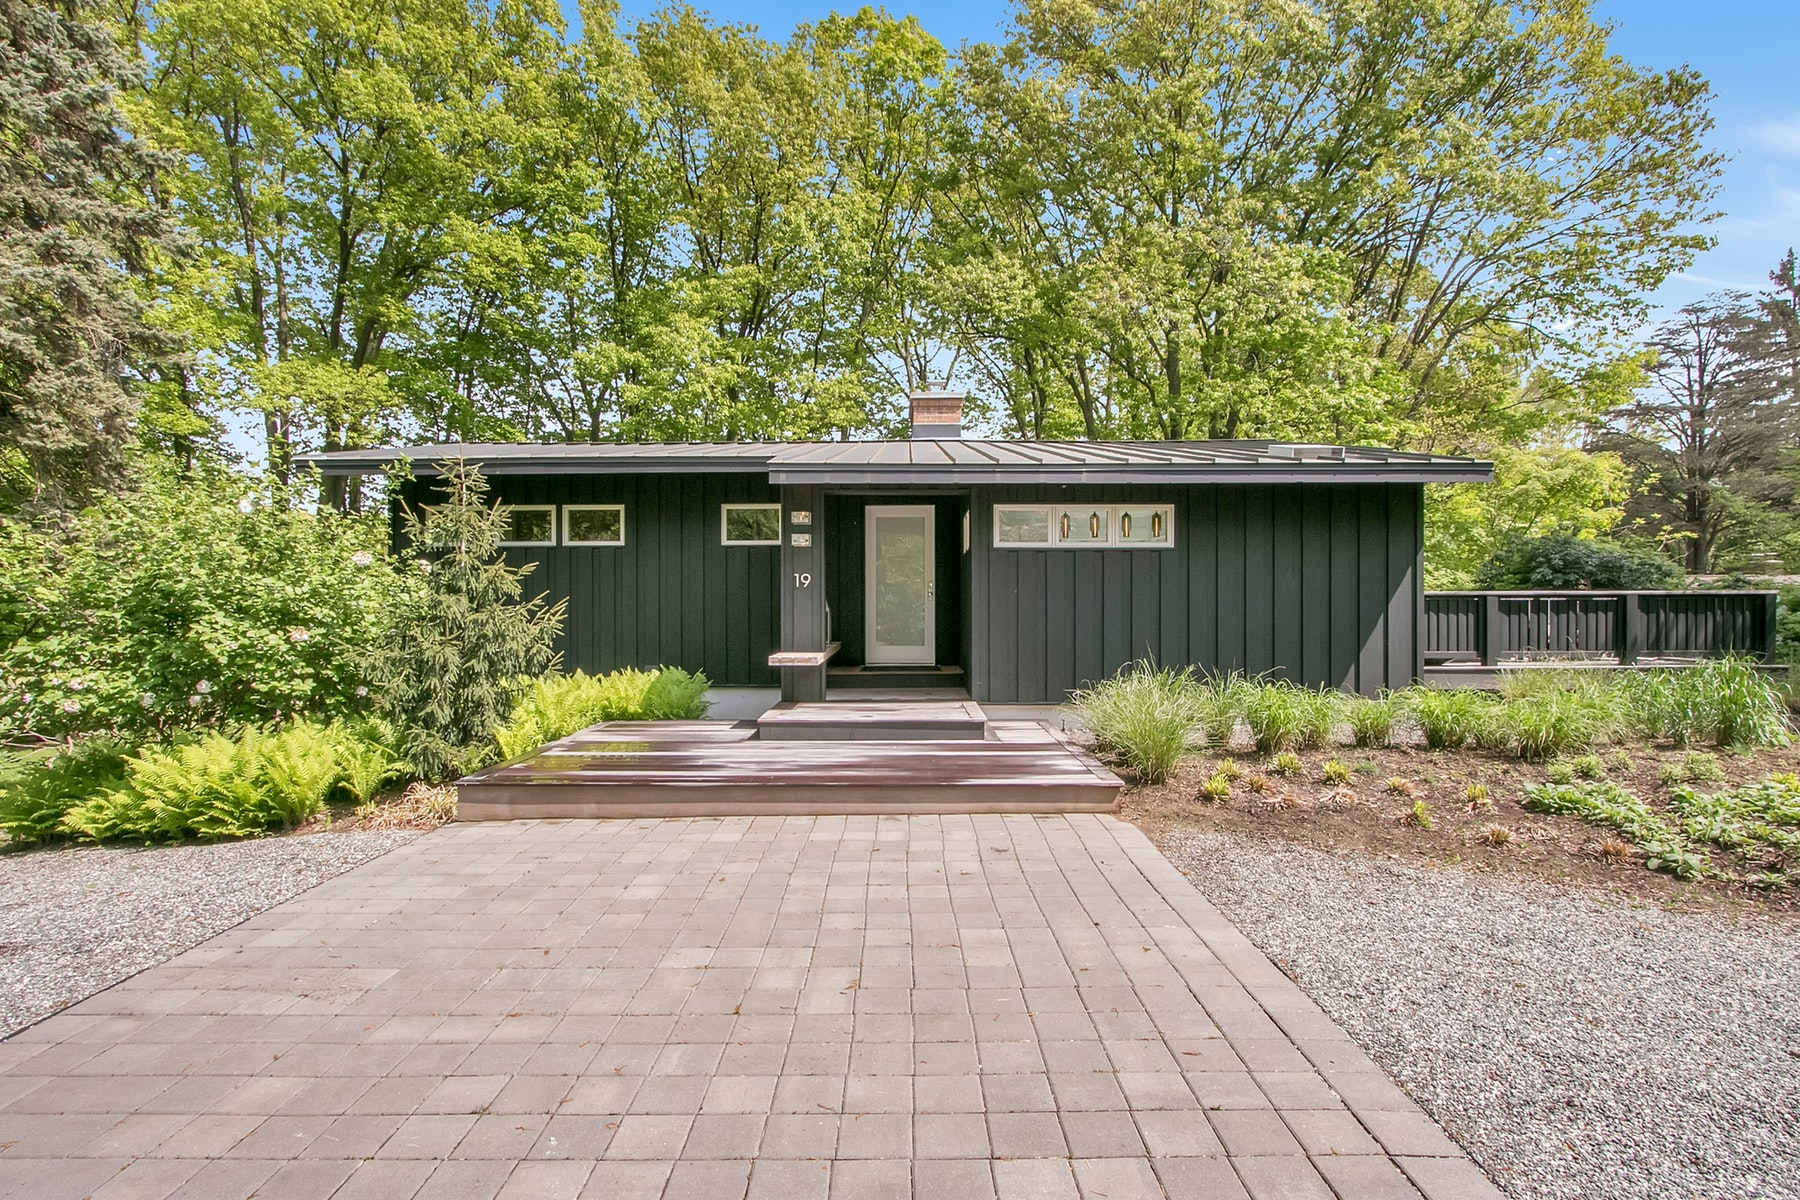 Single Family Homes for Active at Flawless Mid-Century Modern 19 Hickory Hill Road Tappan, New York 10983 United States